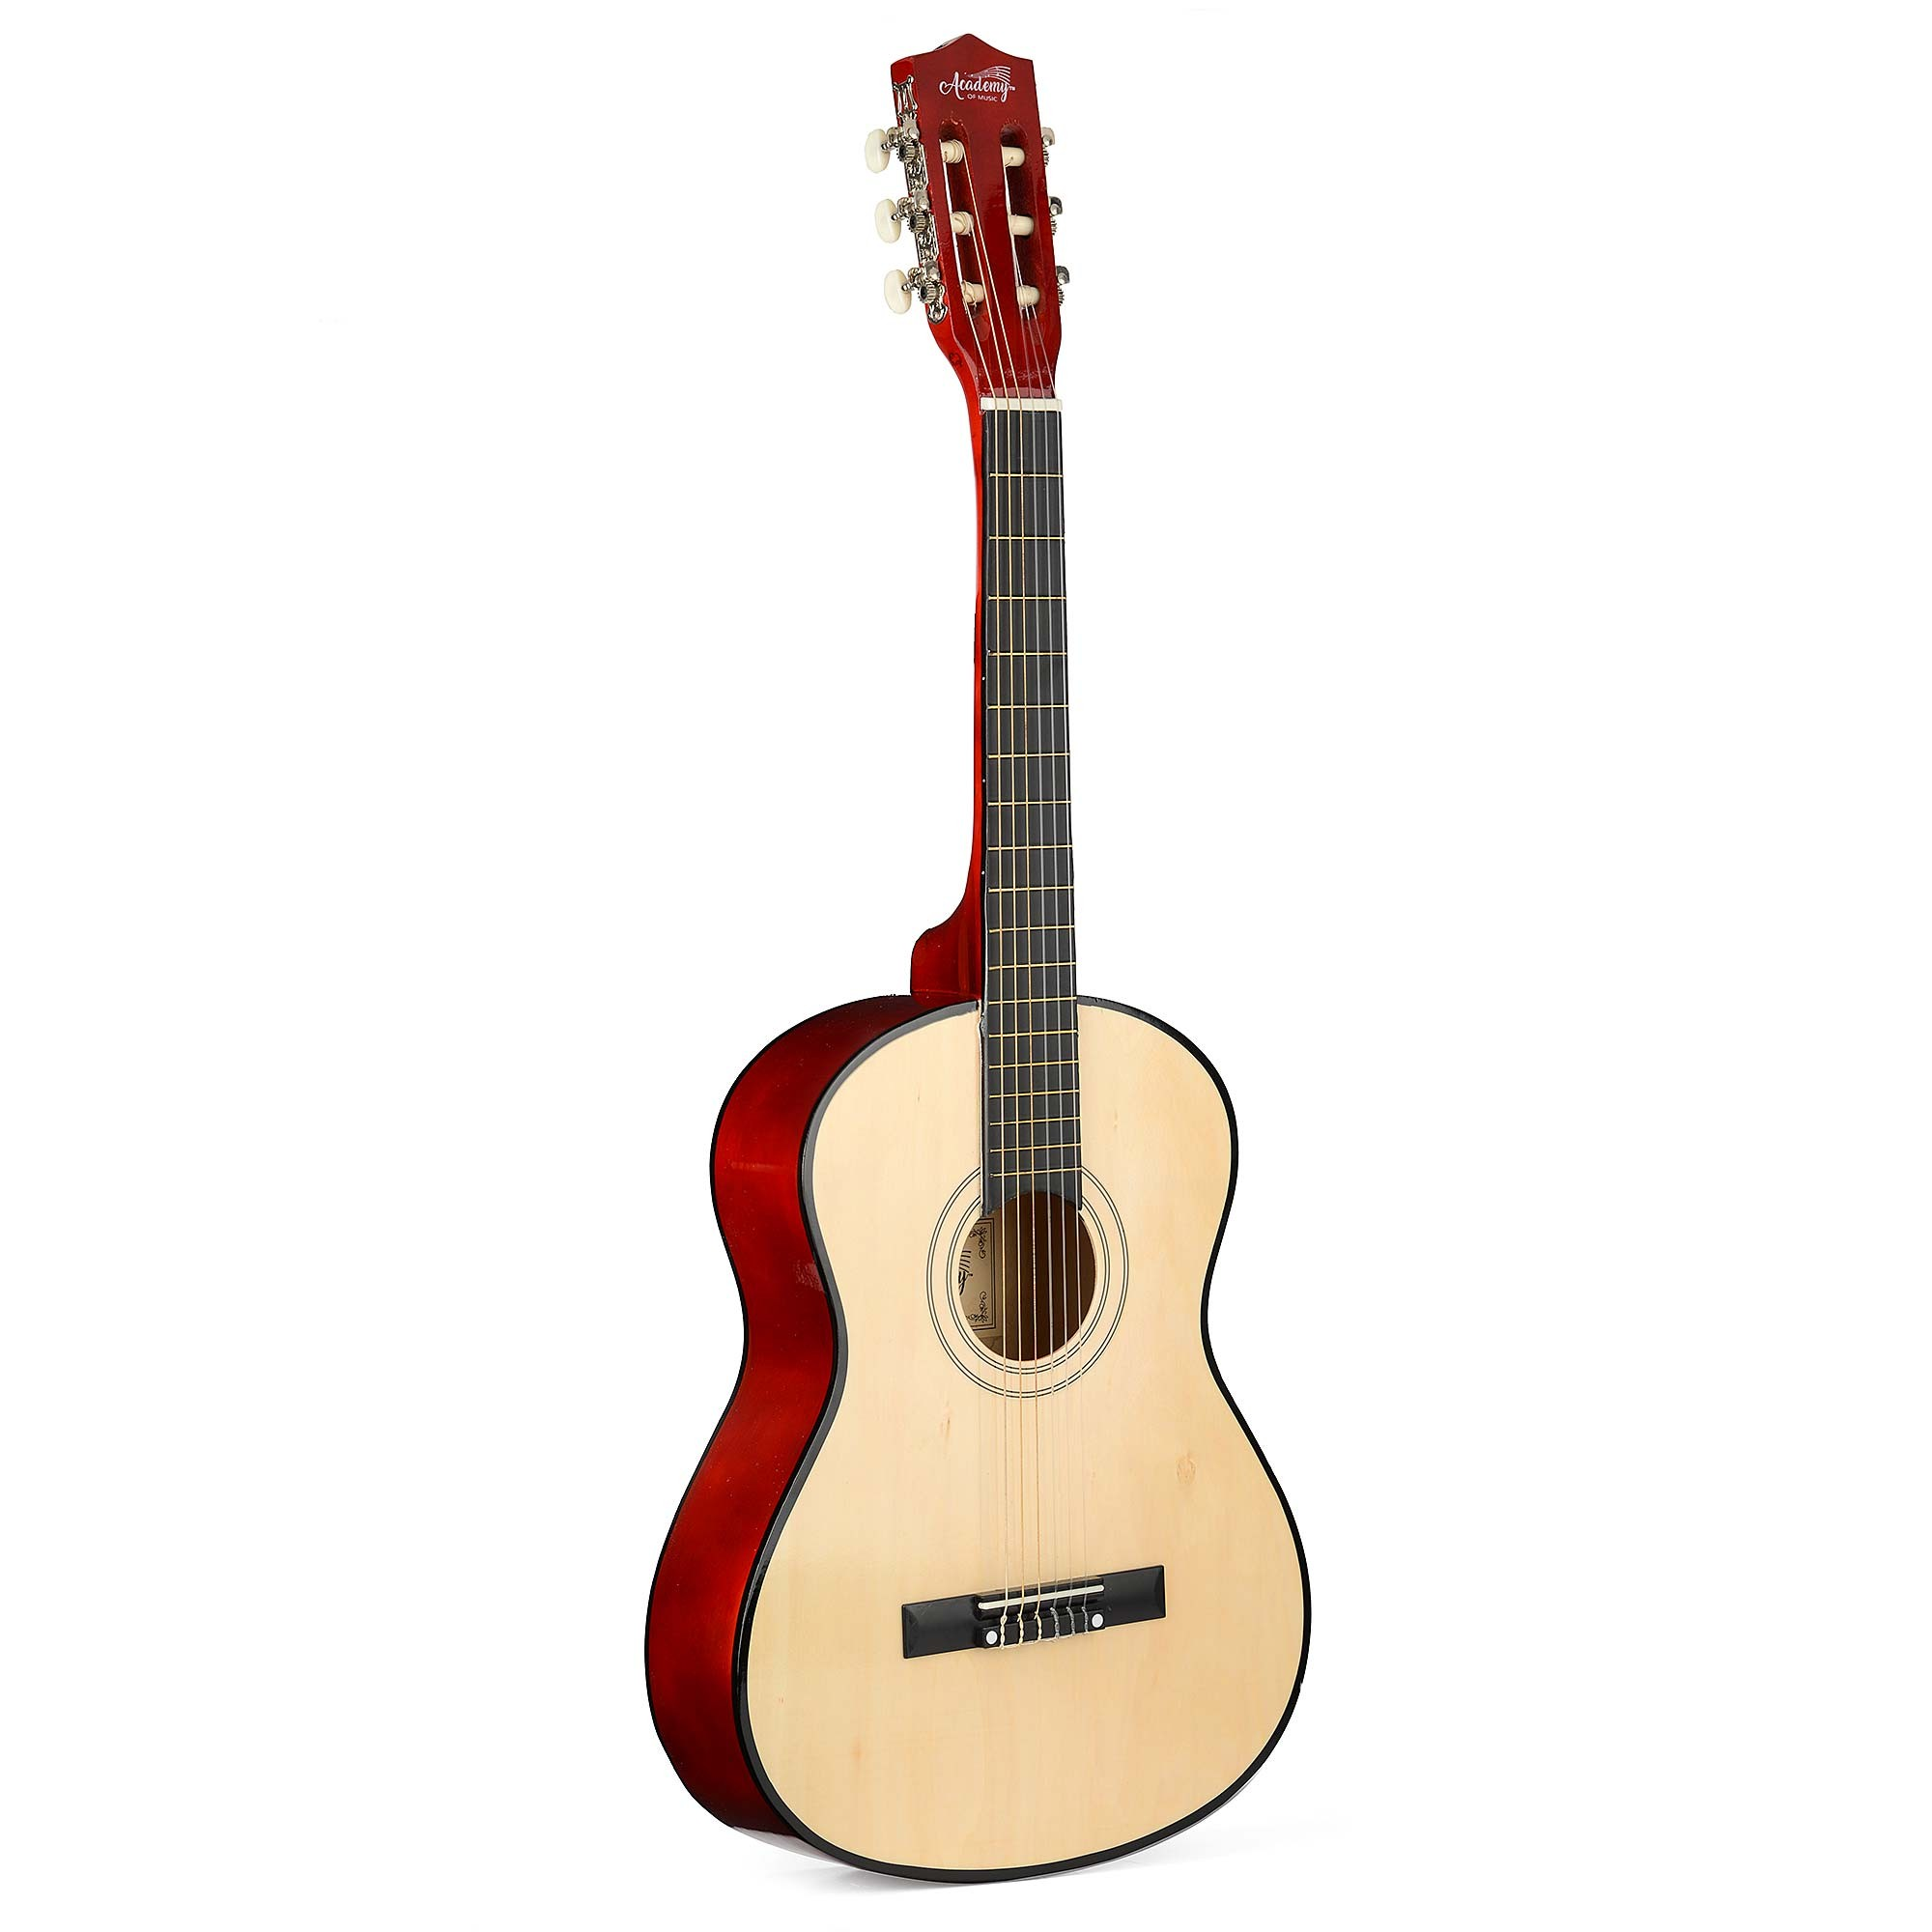 Academy Of Music 36in Acoustic Guitar